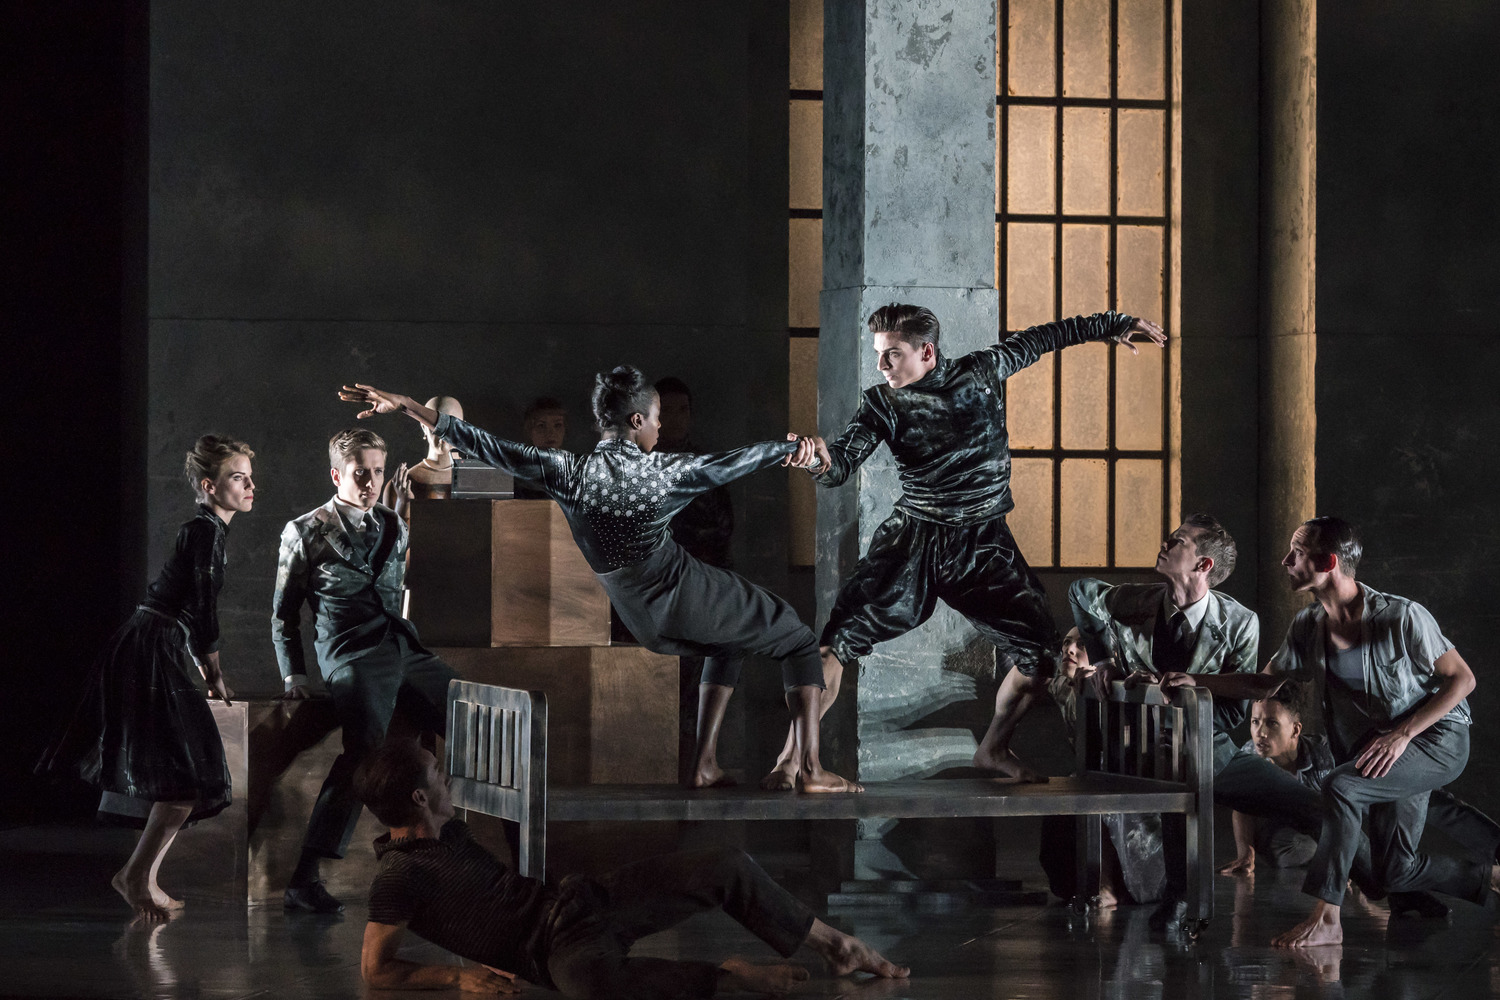 BWW Review: RAMBERT'S LIFE IS A DREAM, Sadler's Wells